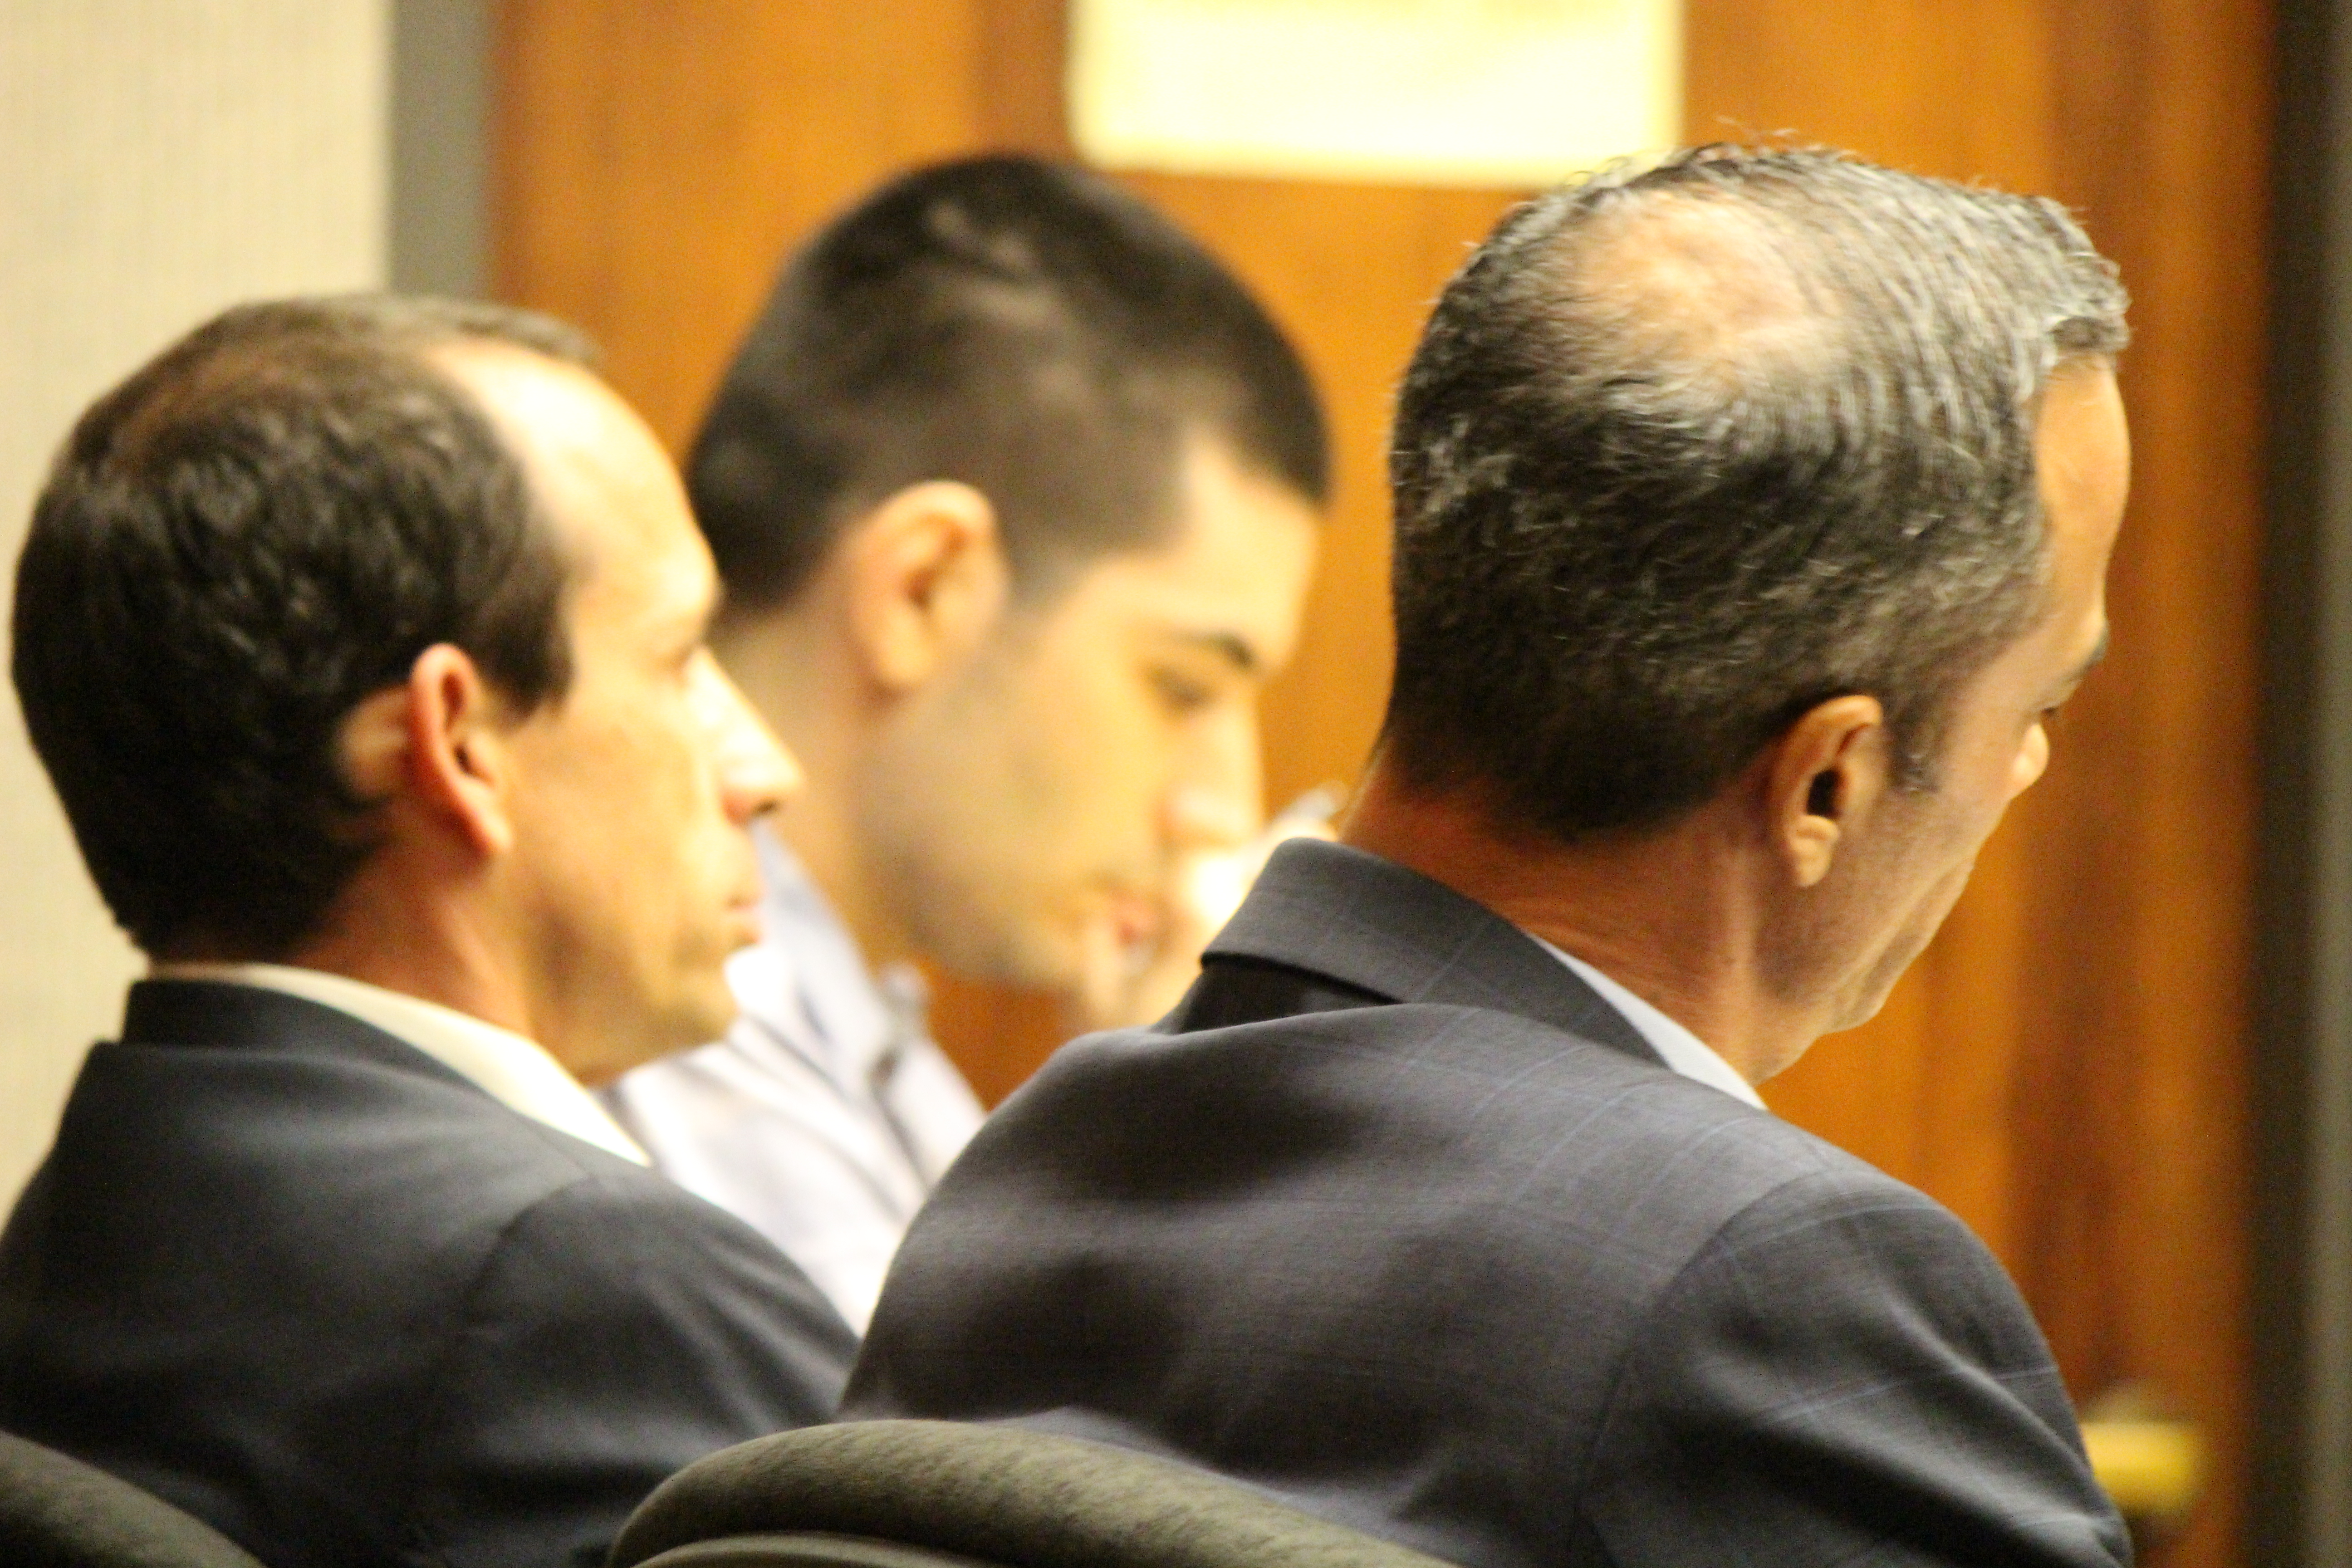 State v Capobianco trail. Defense Attorney Jon Apo in foreground (right) with fellow defense attorney Matthew Nardi (left) and defendant Steven Capobianco (background middle) . PC: 11.30.16 by Wendy Osher.